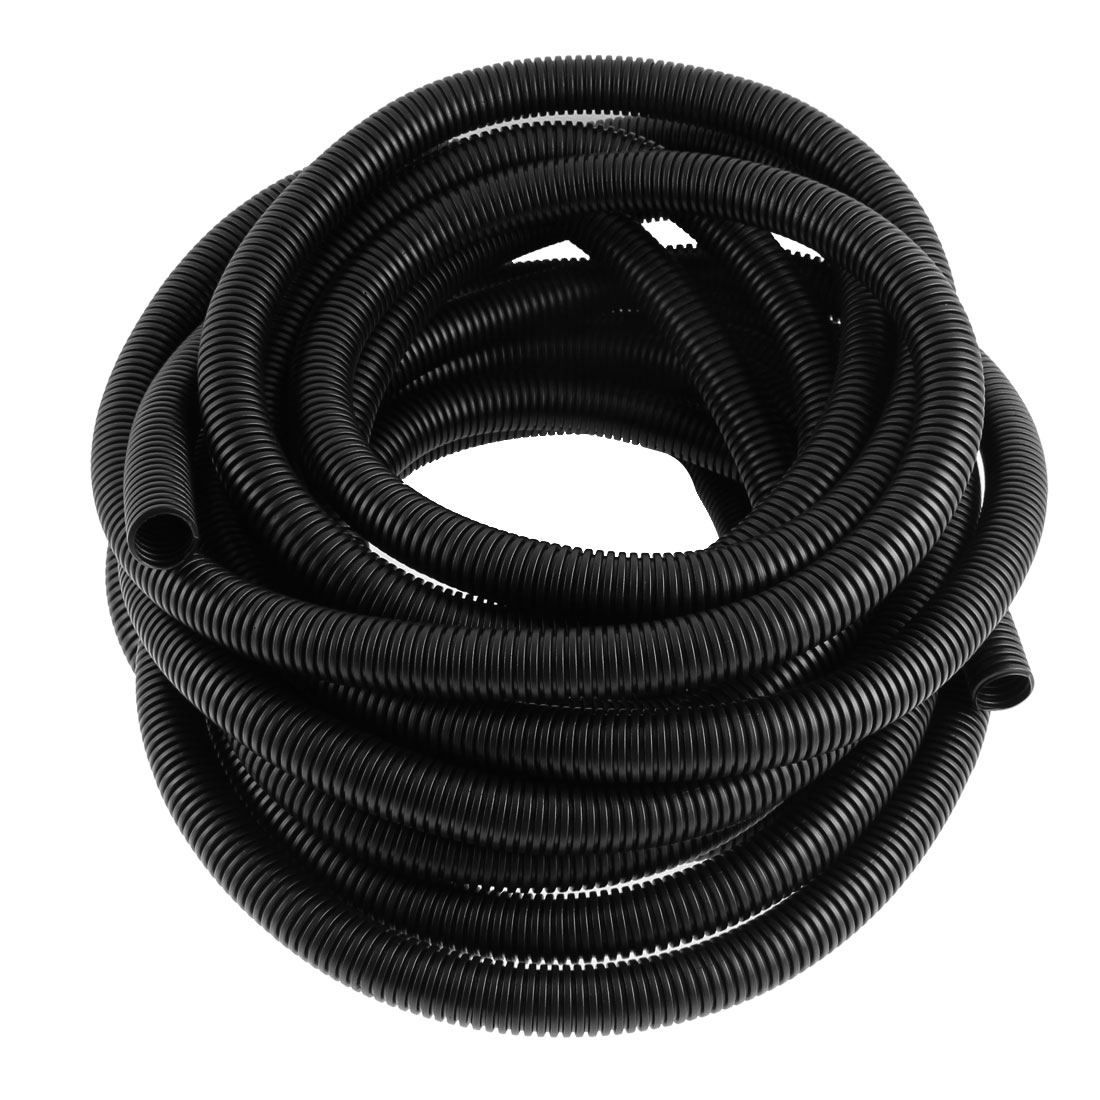 Uxcell Id 17Mm X 21.2Mm Od Flexible Corrugated Conduit Tube Pipe Hose Wire Tubing 10M 33Ft .1.3m1.5m10m12m2m3m